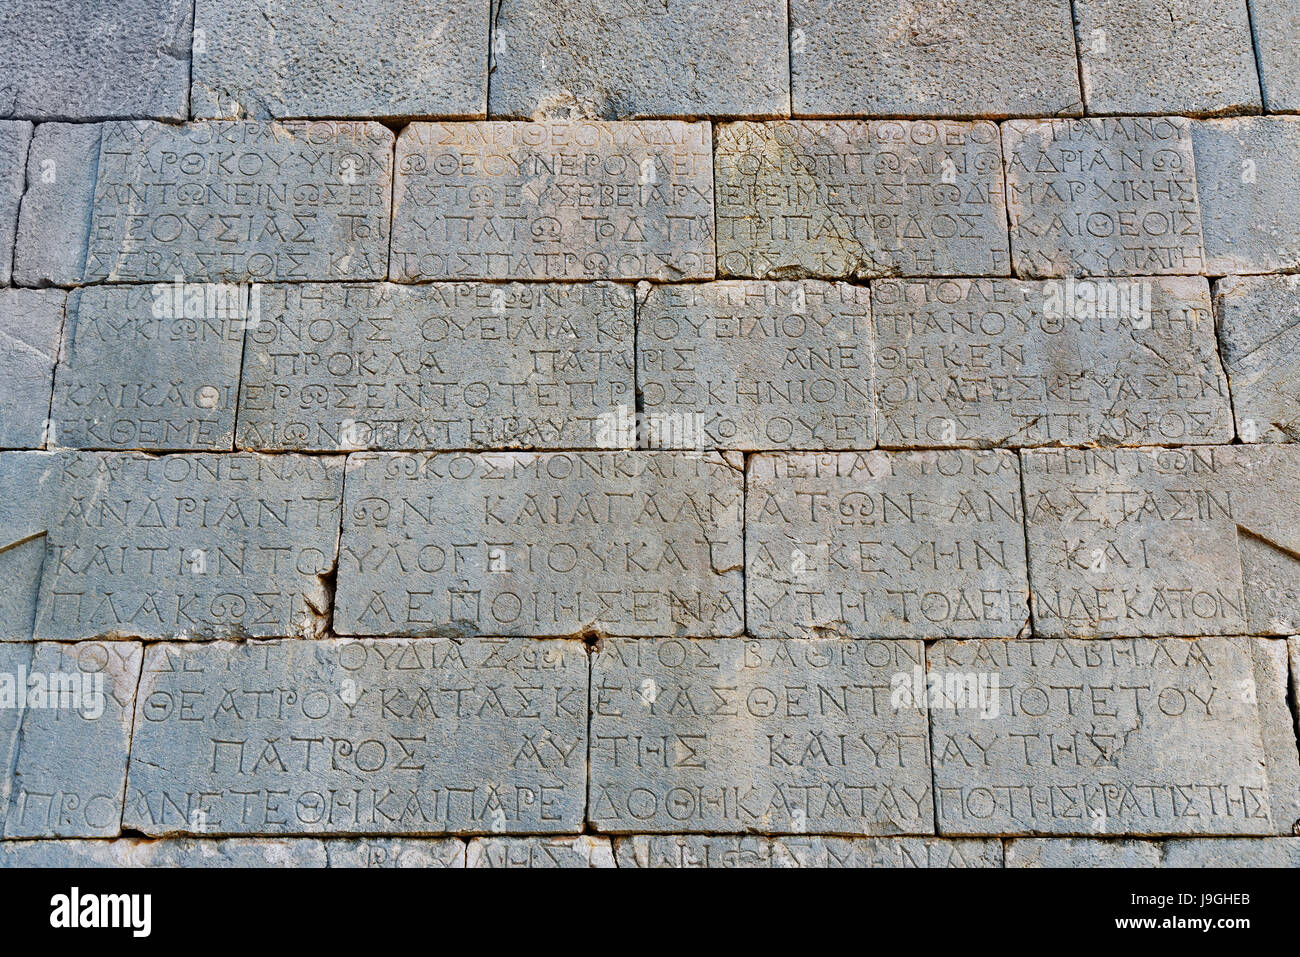 Wall with Greek Script in ruins of amphitheater at ancient Lycian city Patara. Antalya Province. Turkey - Stock Image